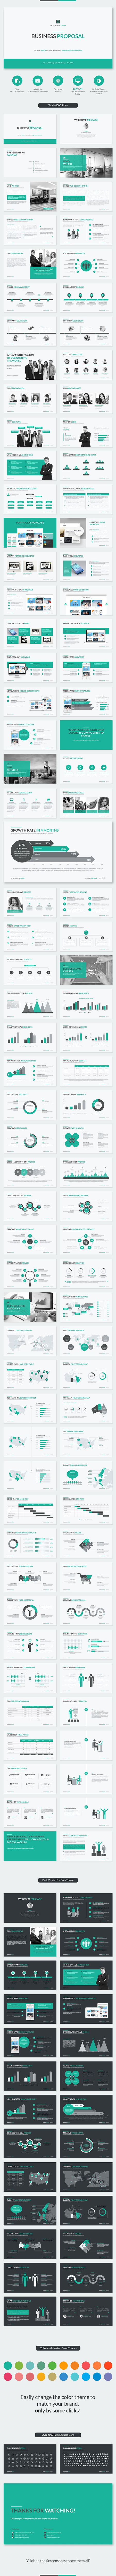 Business Proposal Google Slides Template is a simple, minimal and creative Google Slides Template suitable for Proposal Presentation for customers and other people who want to show your professionalism to them.